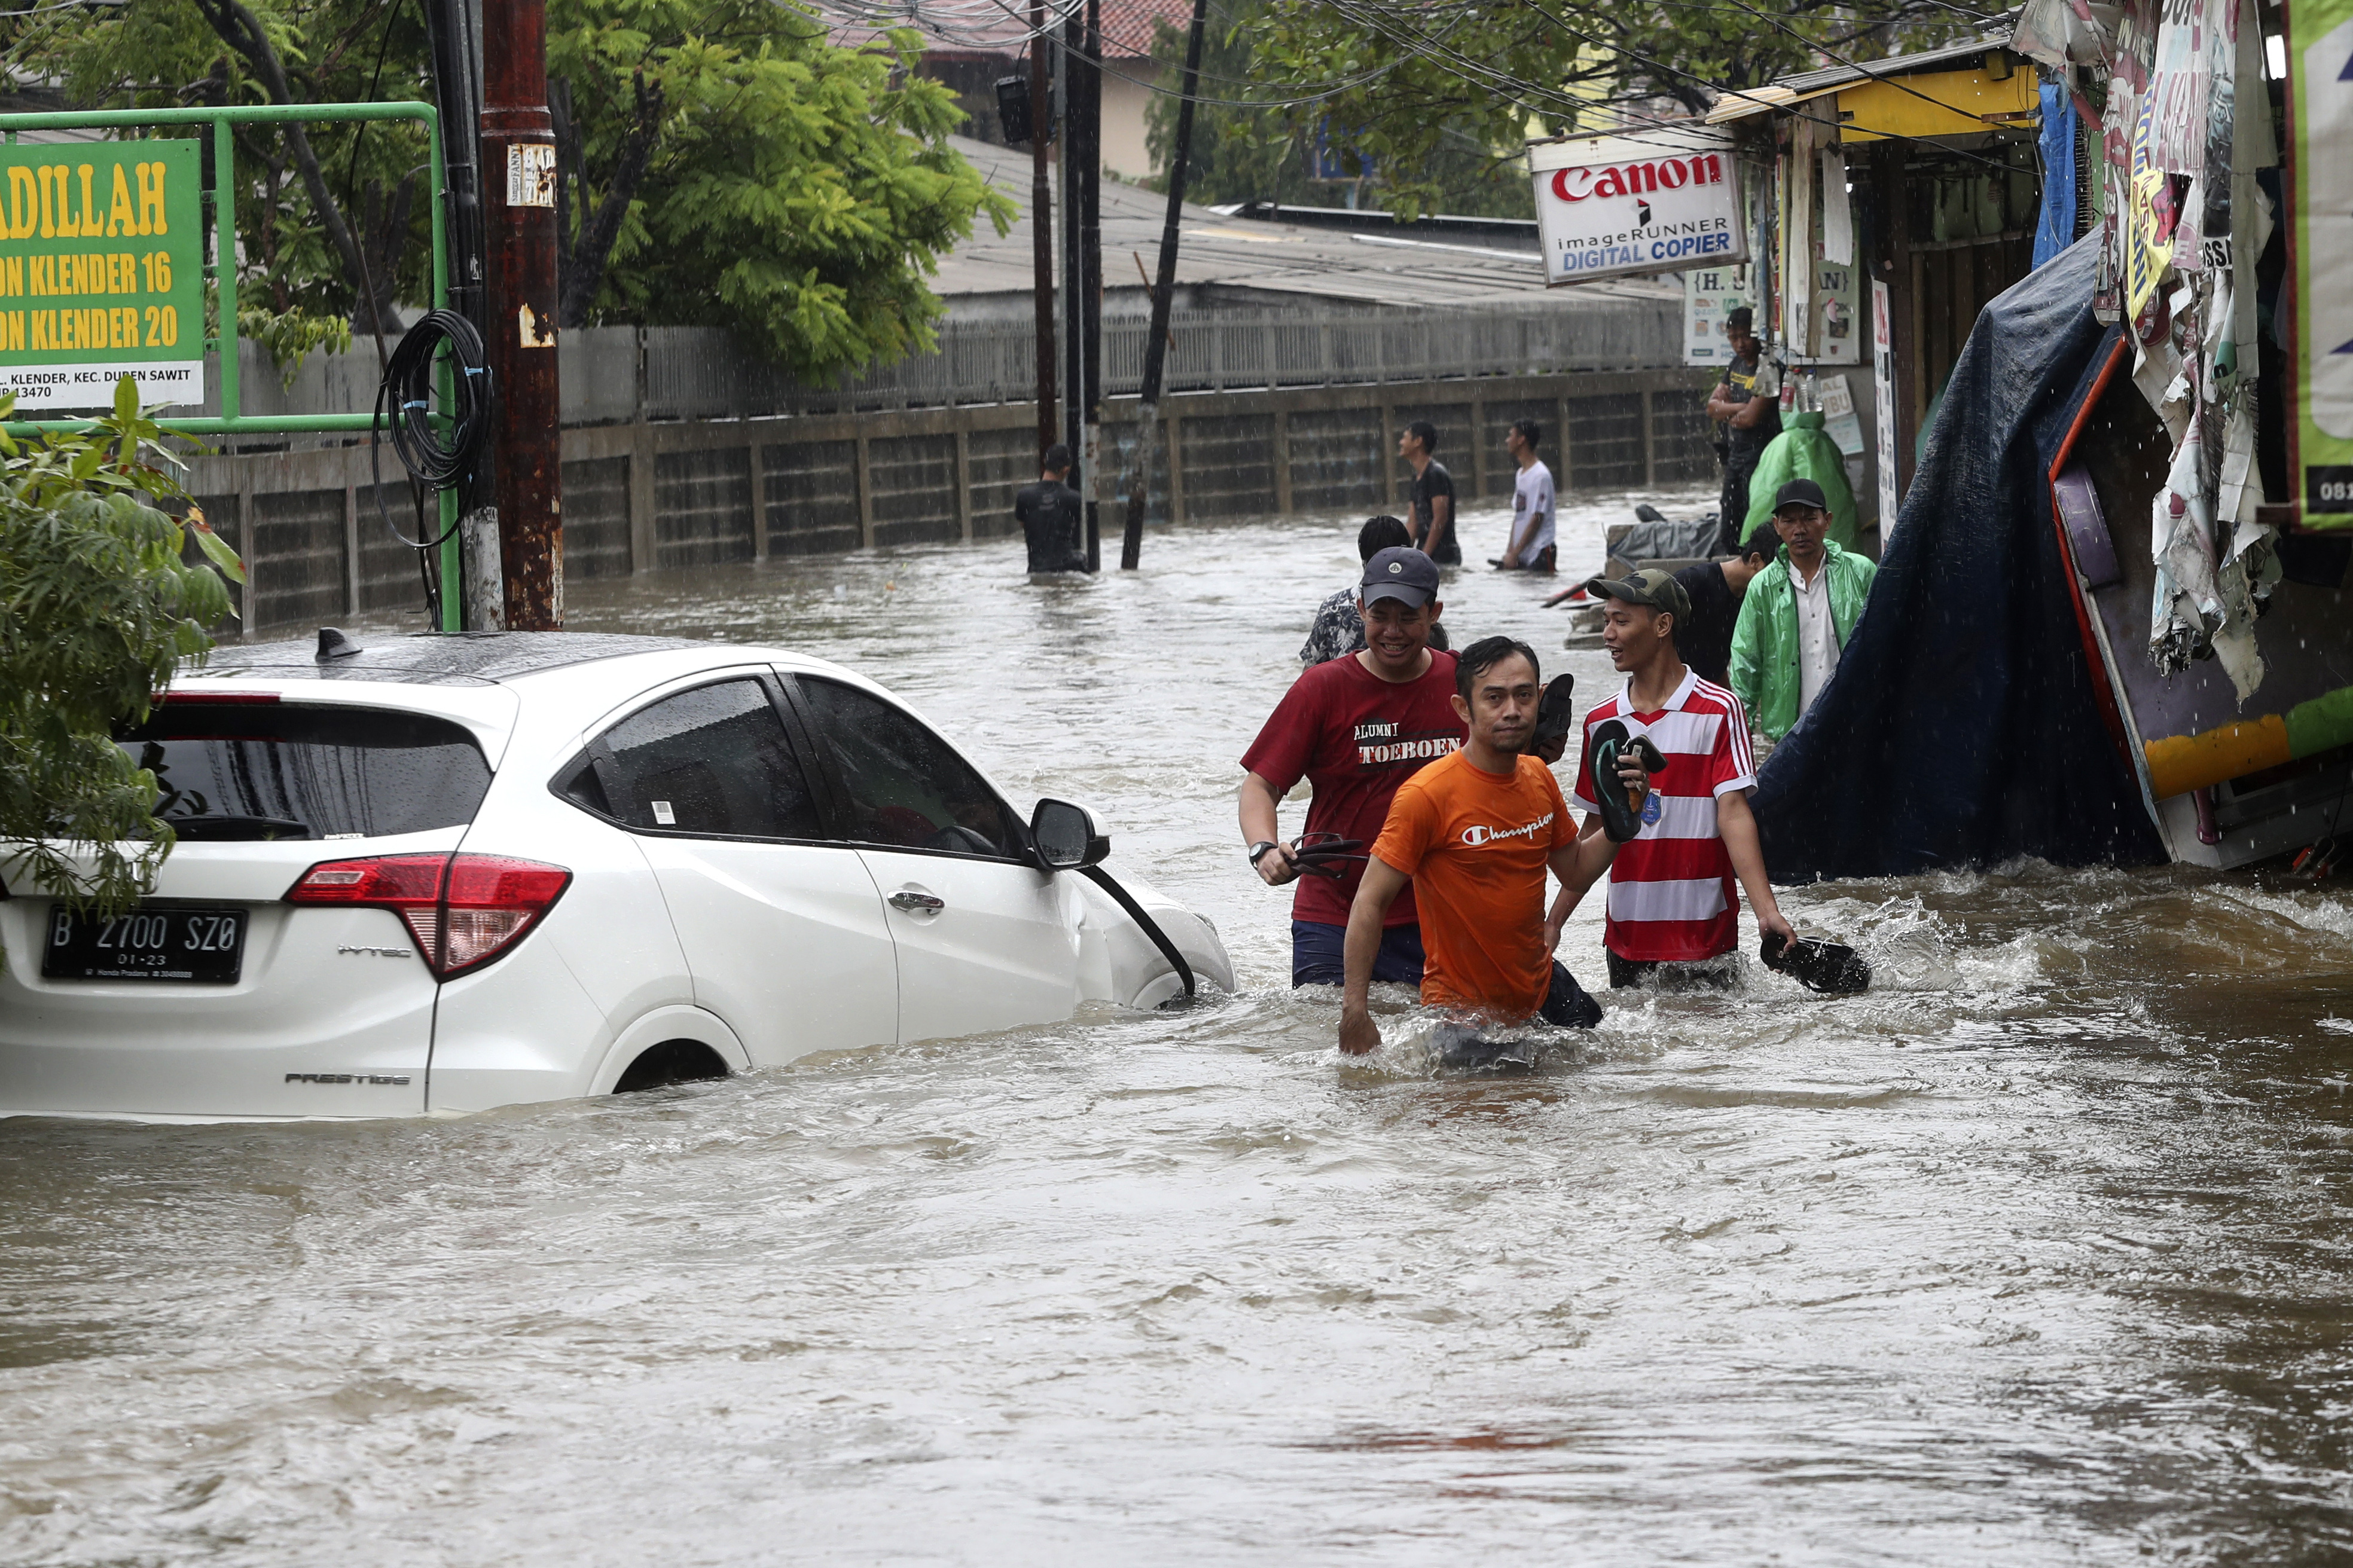 16 dead, thousands caught in flooding in Indonesias capital